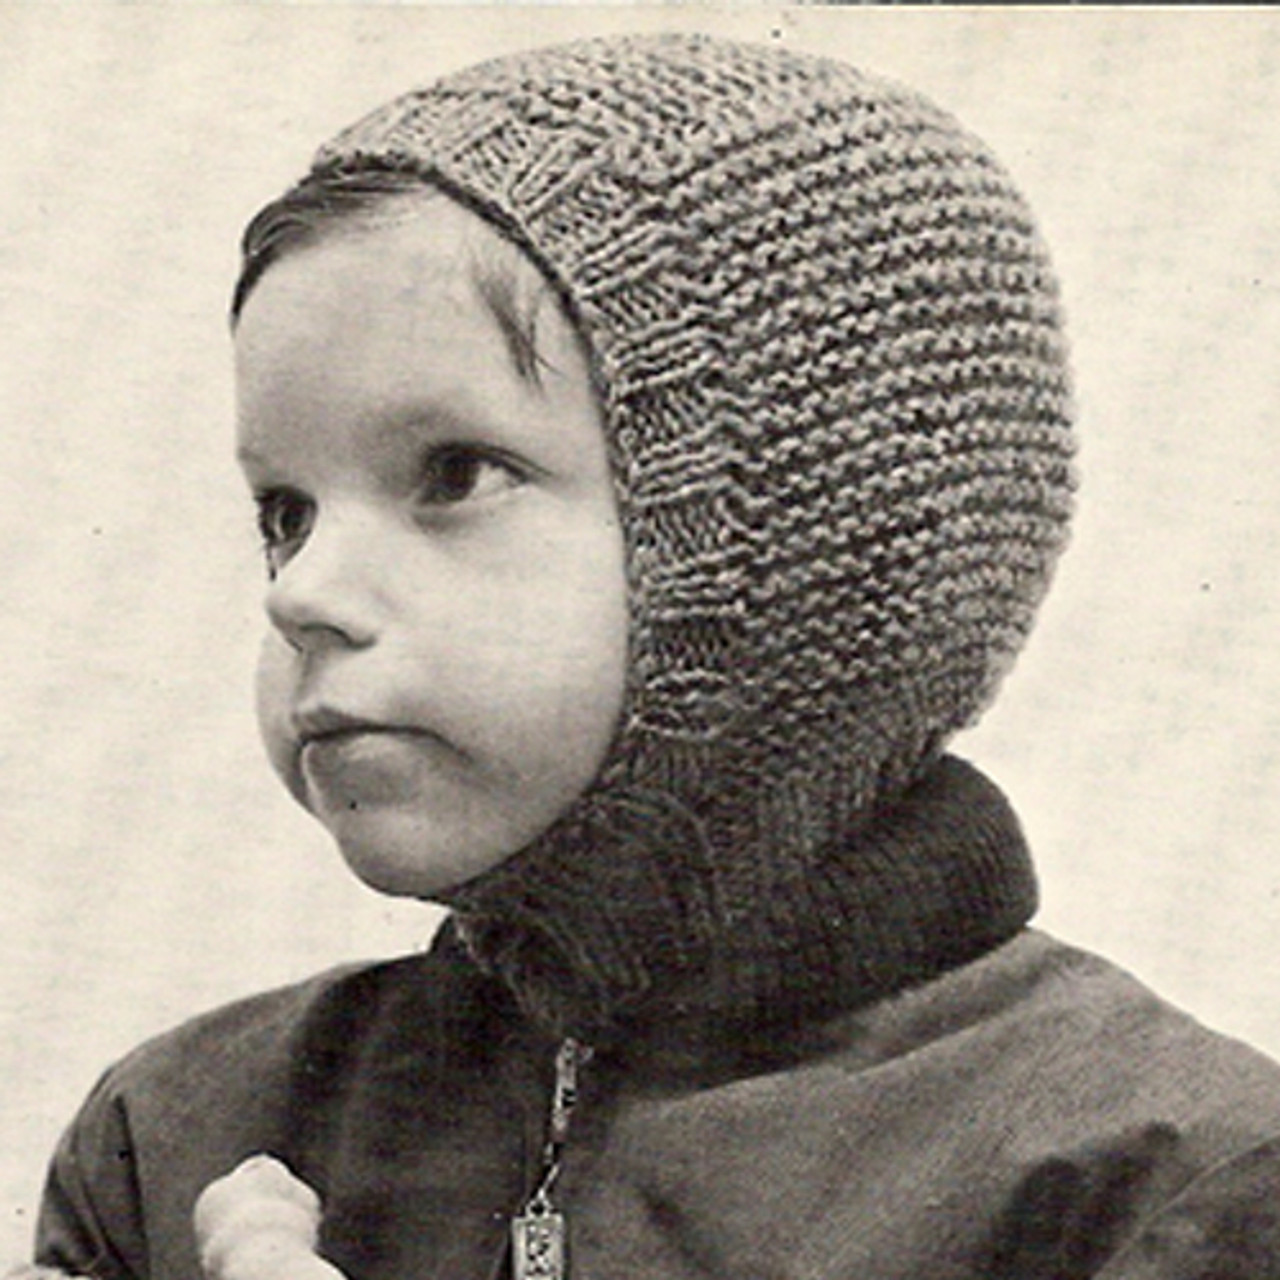 Boys Knitted Helmet Pattern from Columbia Minerva